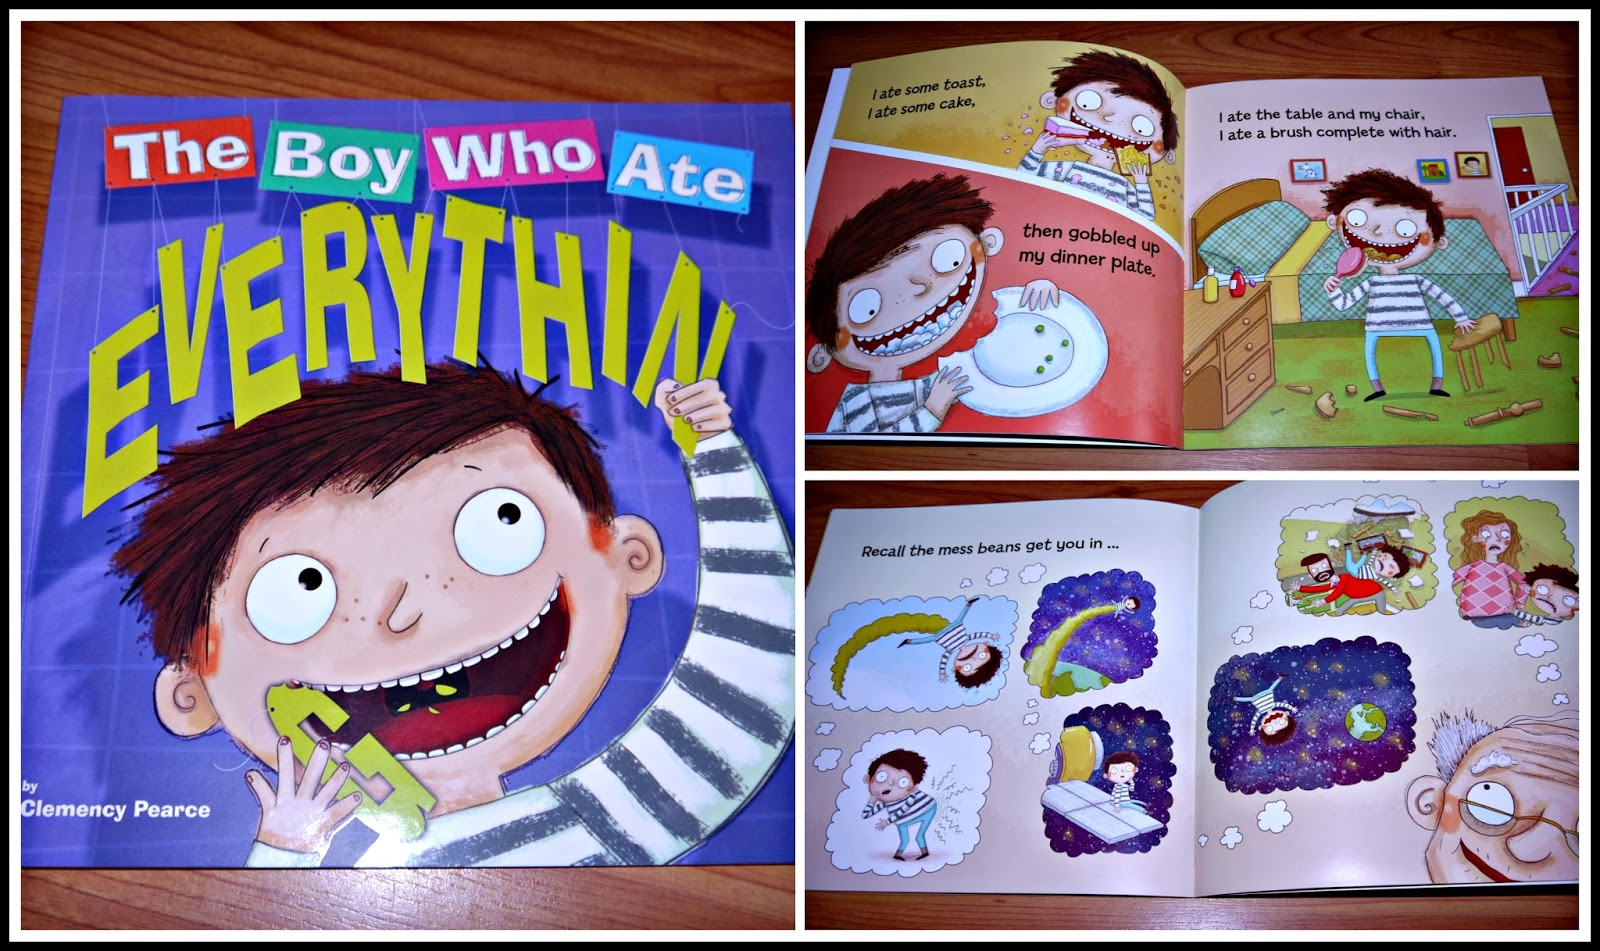 picture book, Top That Publishing, toilet humour